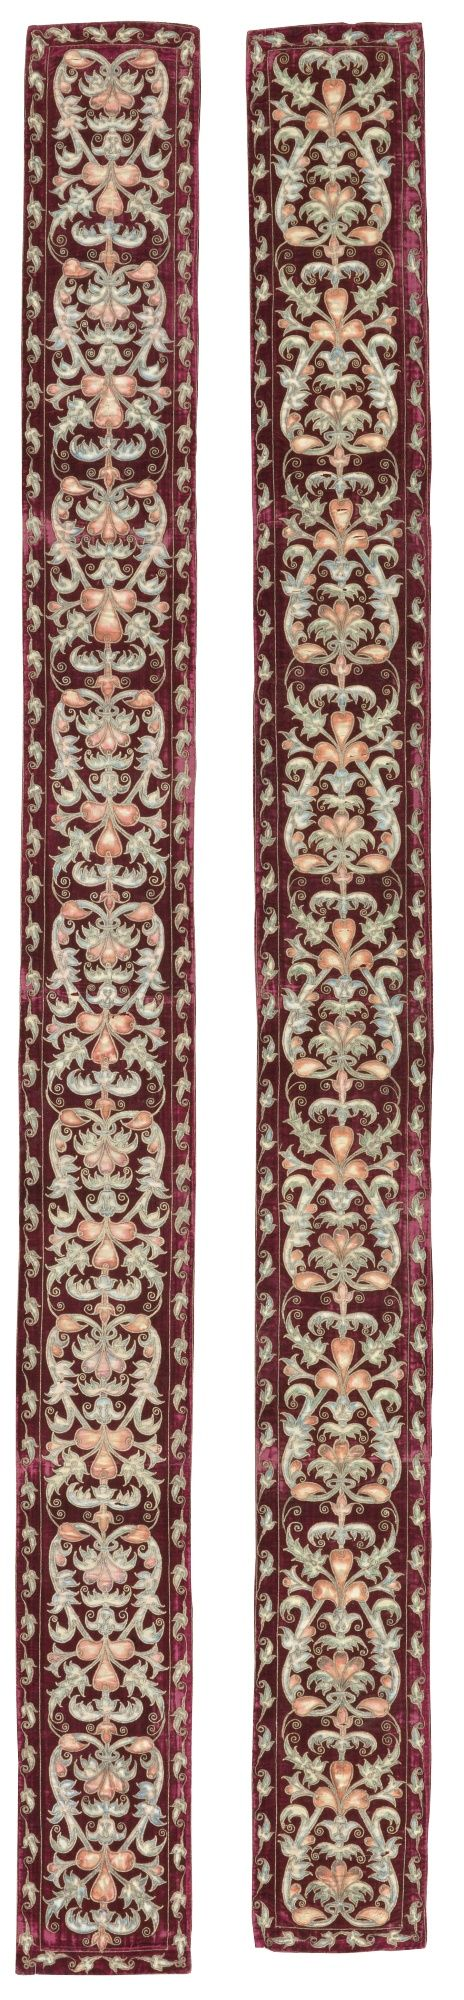 A pair of cerise velvet, metal-thread and painted silk appliqué strips, probably Italian or Spanish, 18th century | lot | Sotheby's